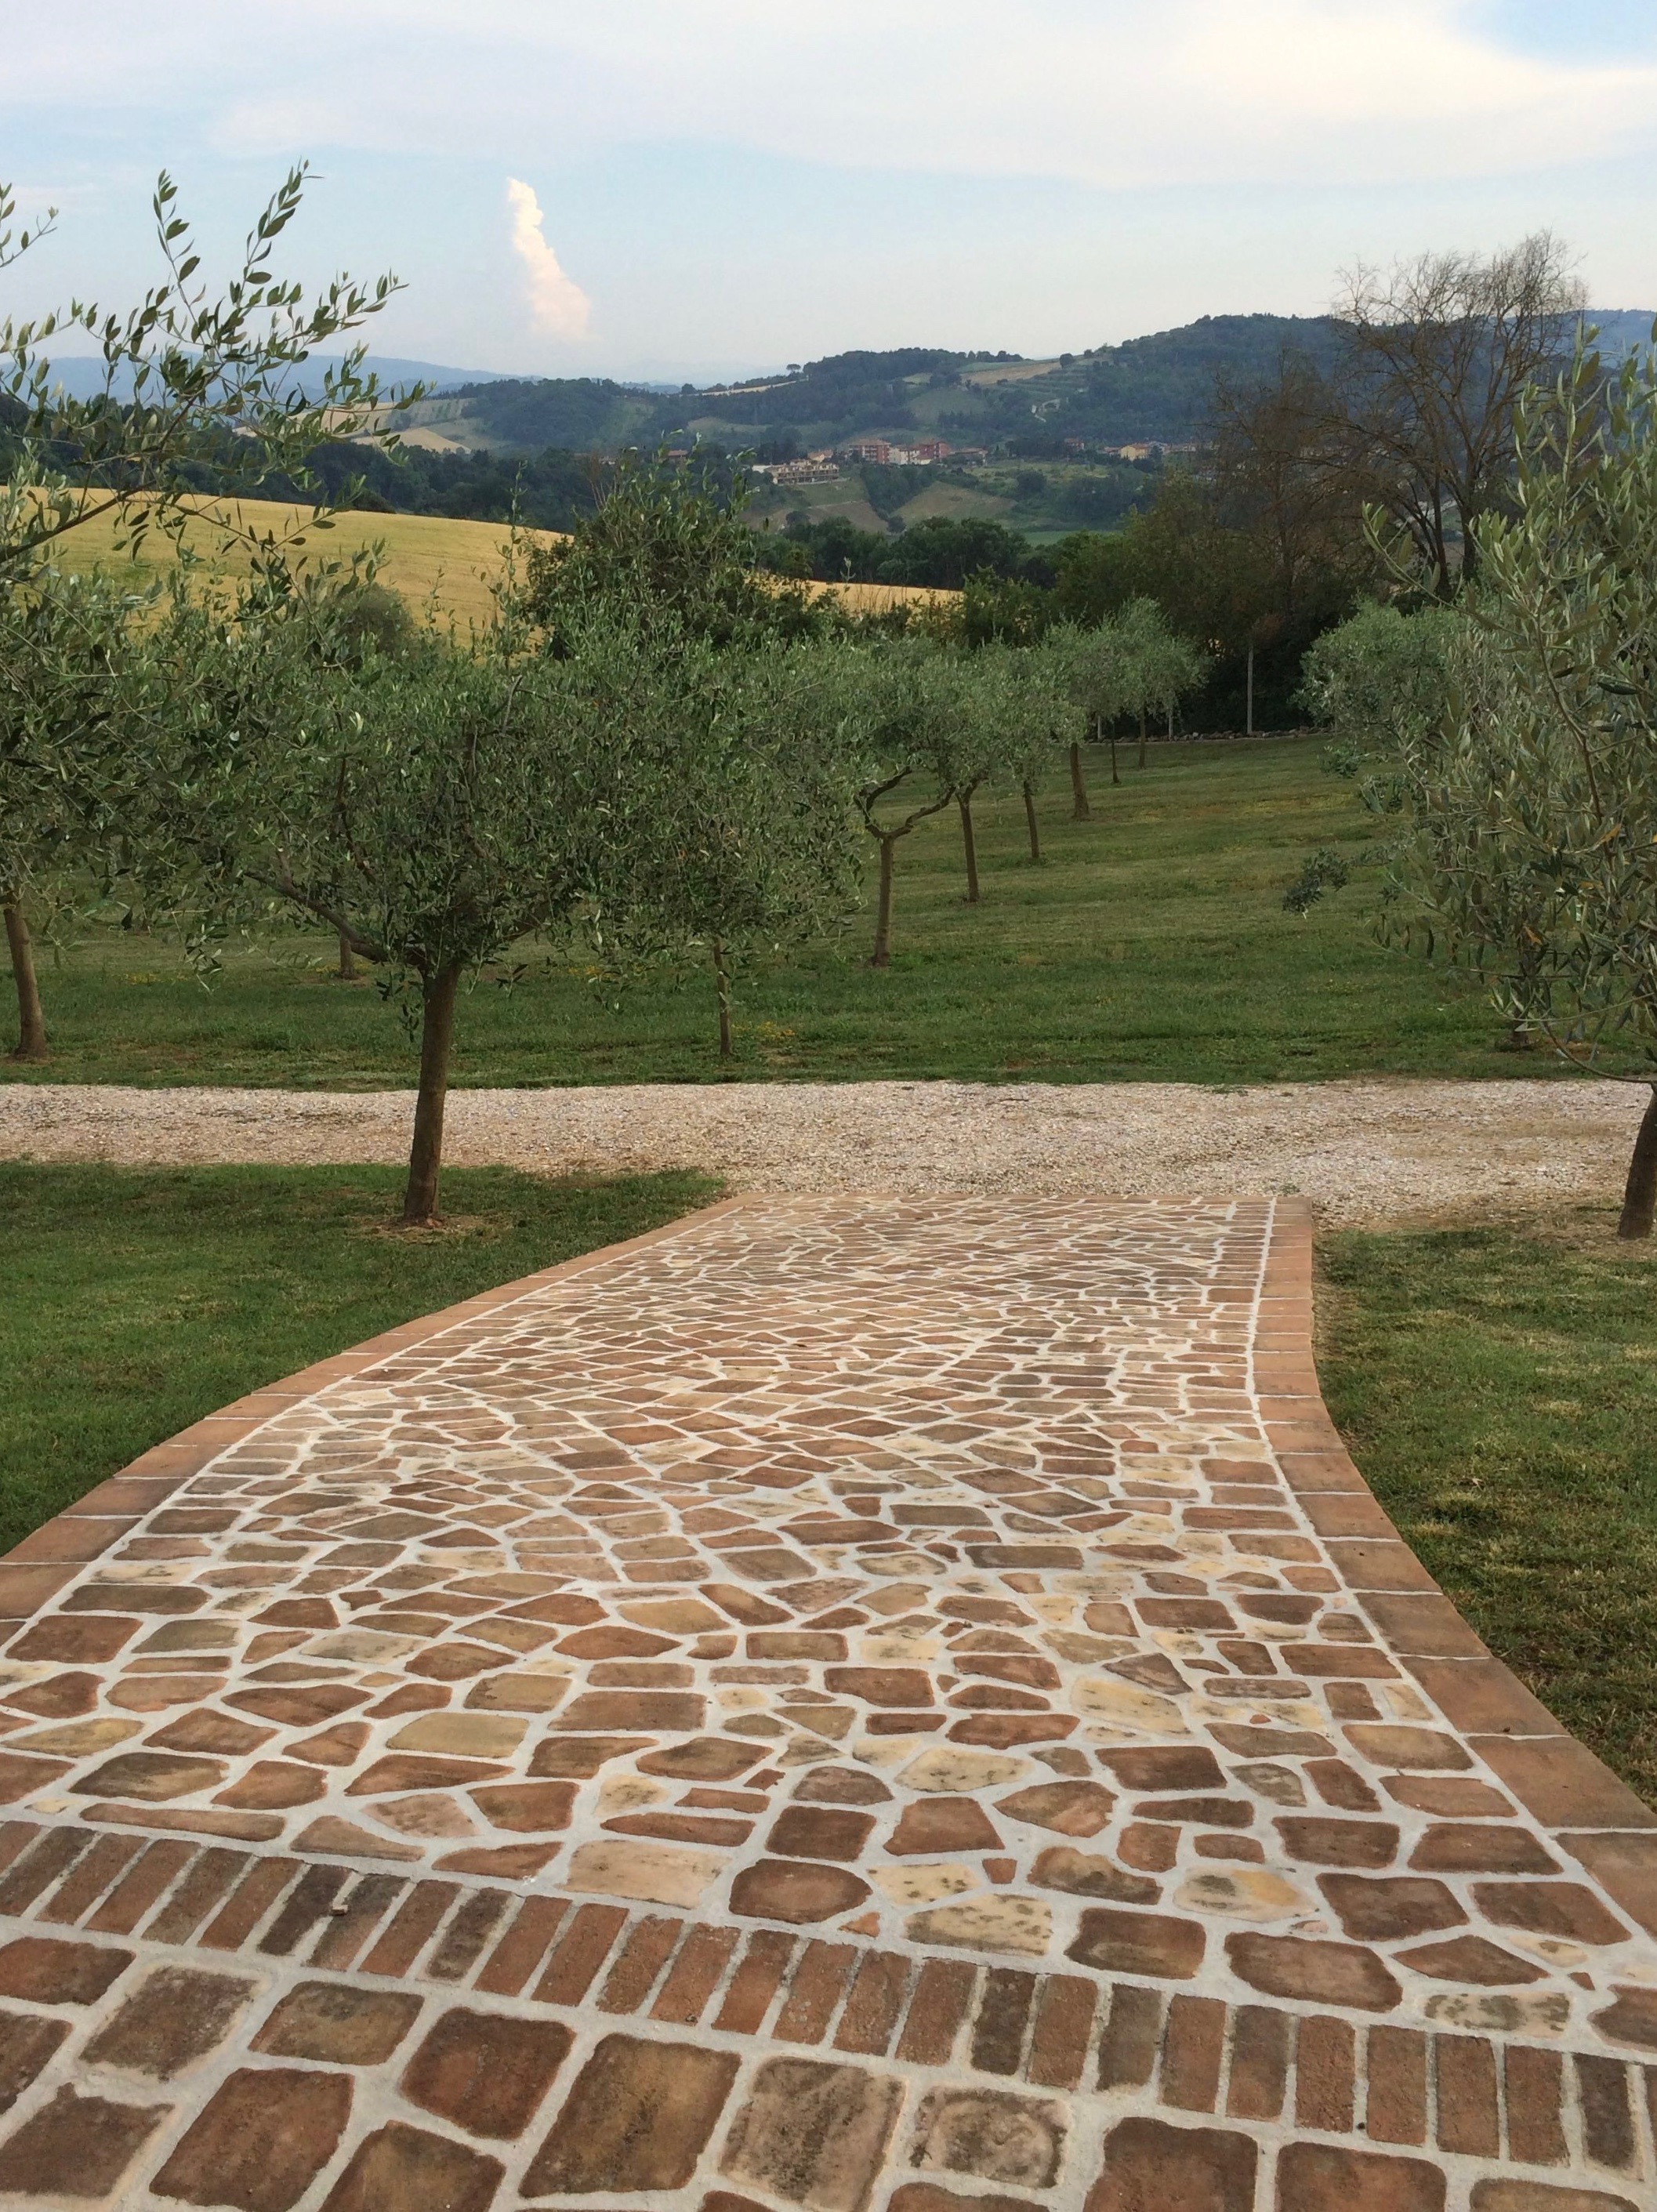 Our friends' olive grove in Umbria, Italy